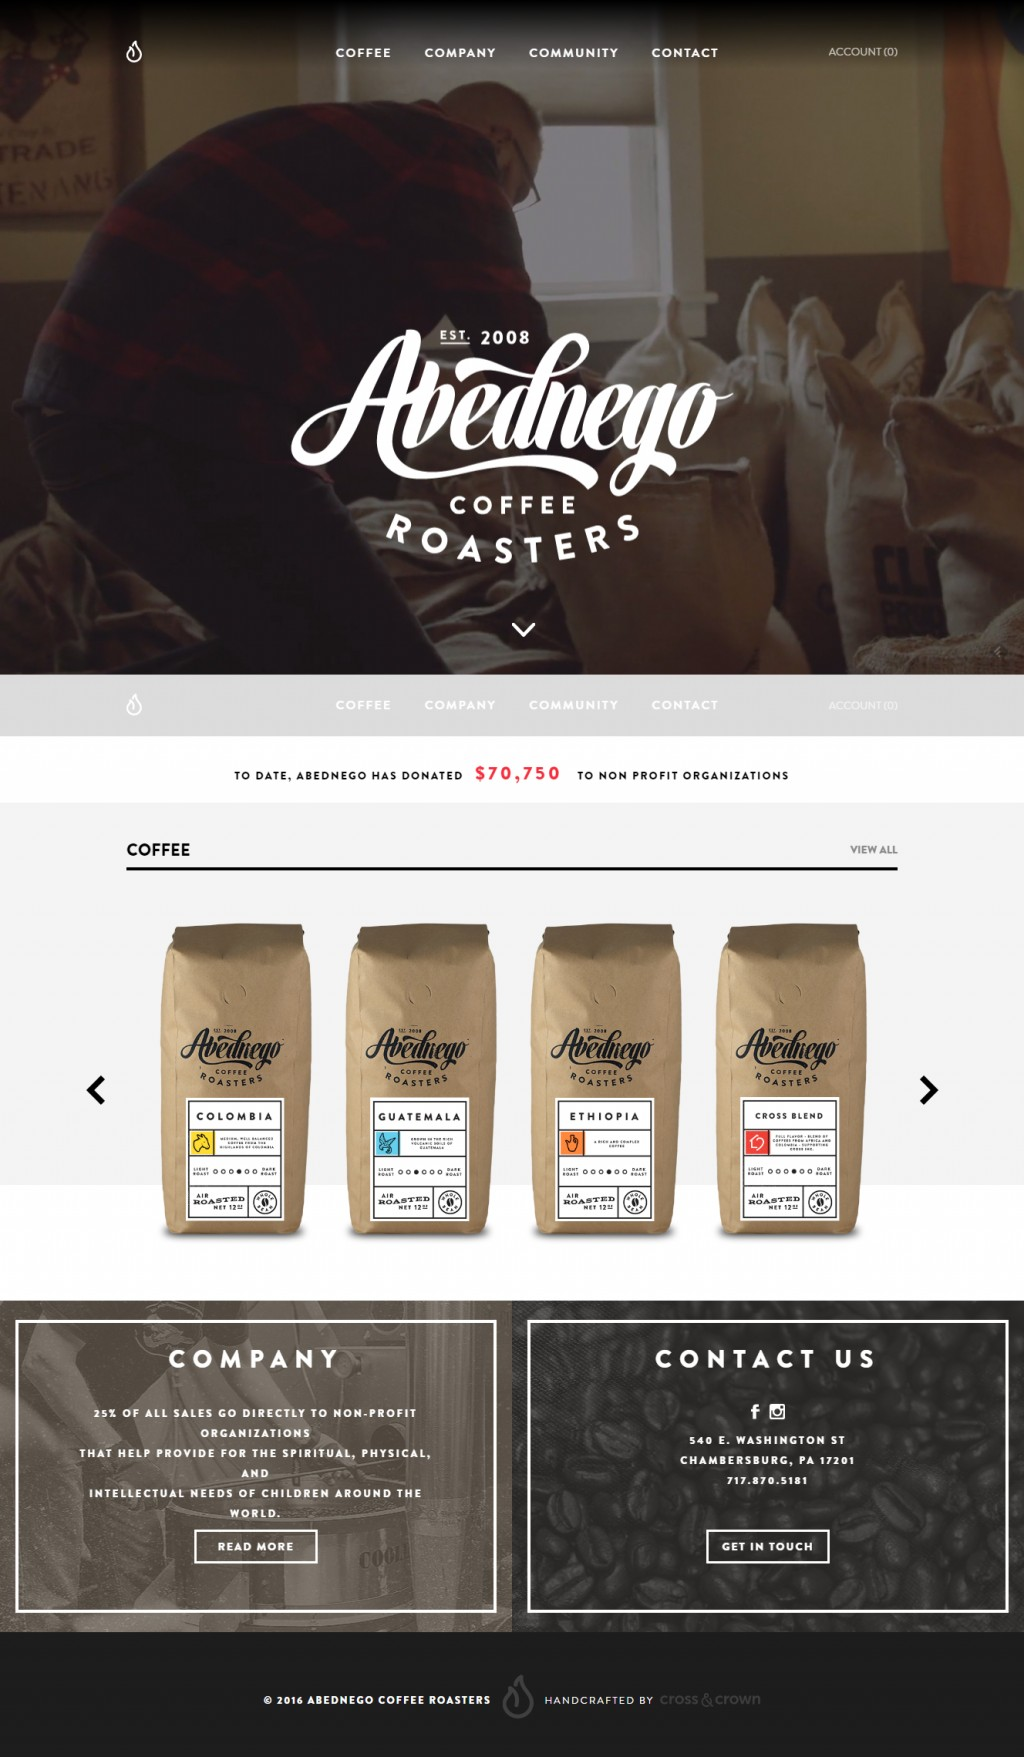 Abednego Coffee Roasters